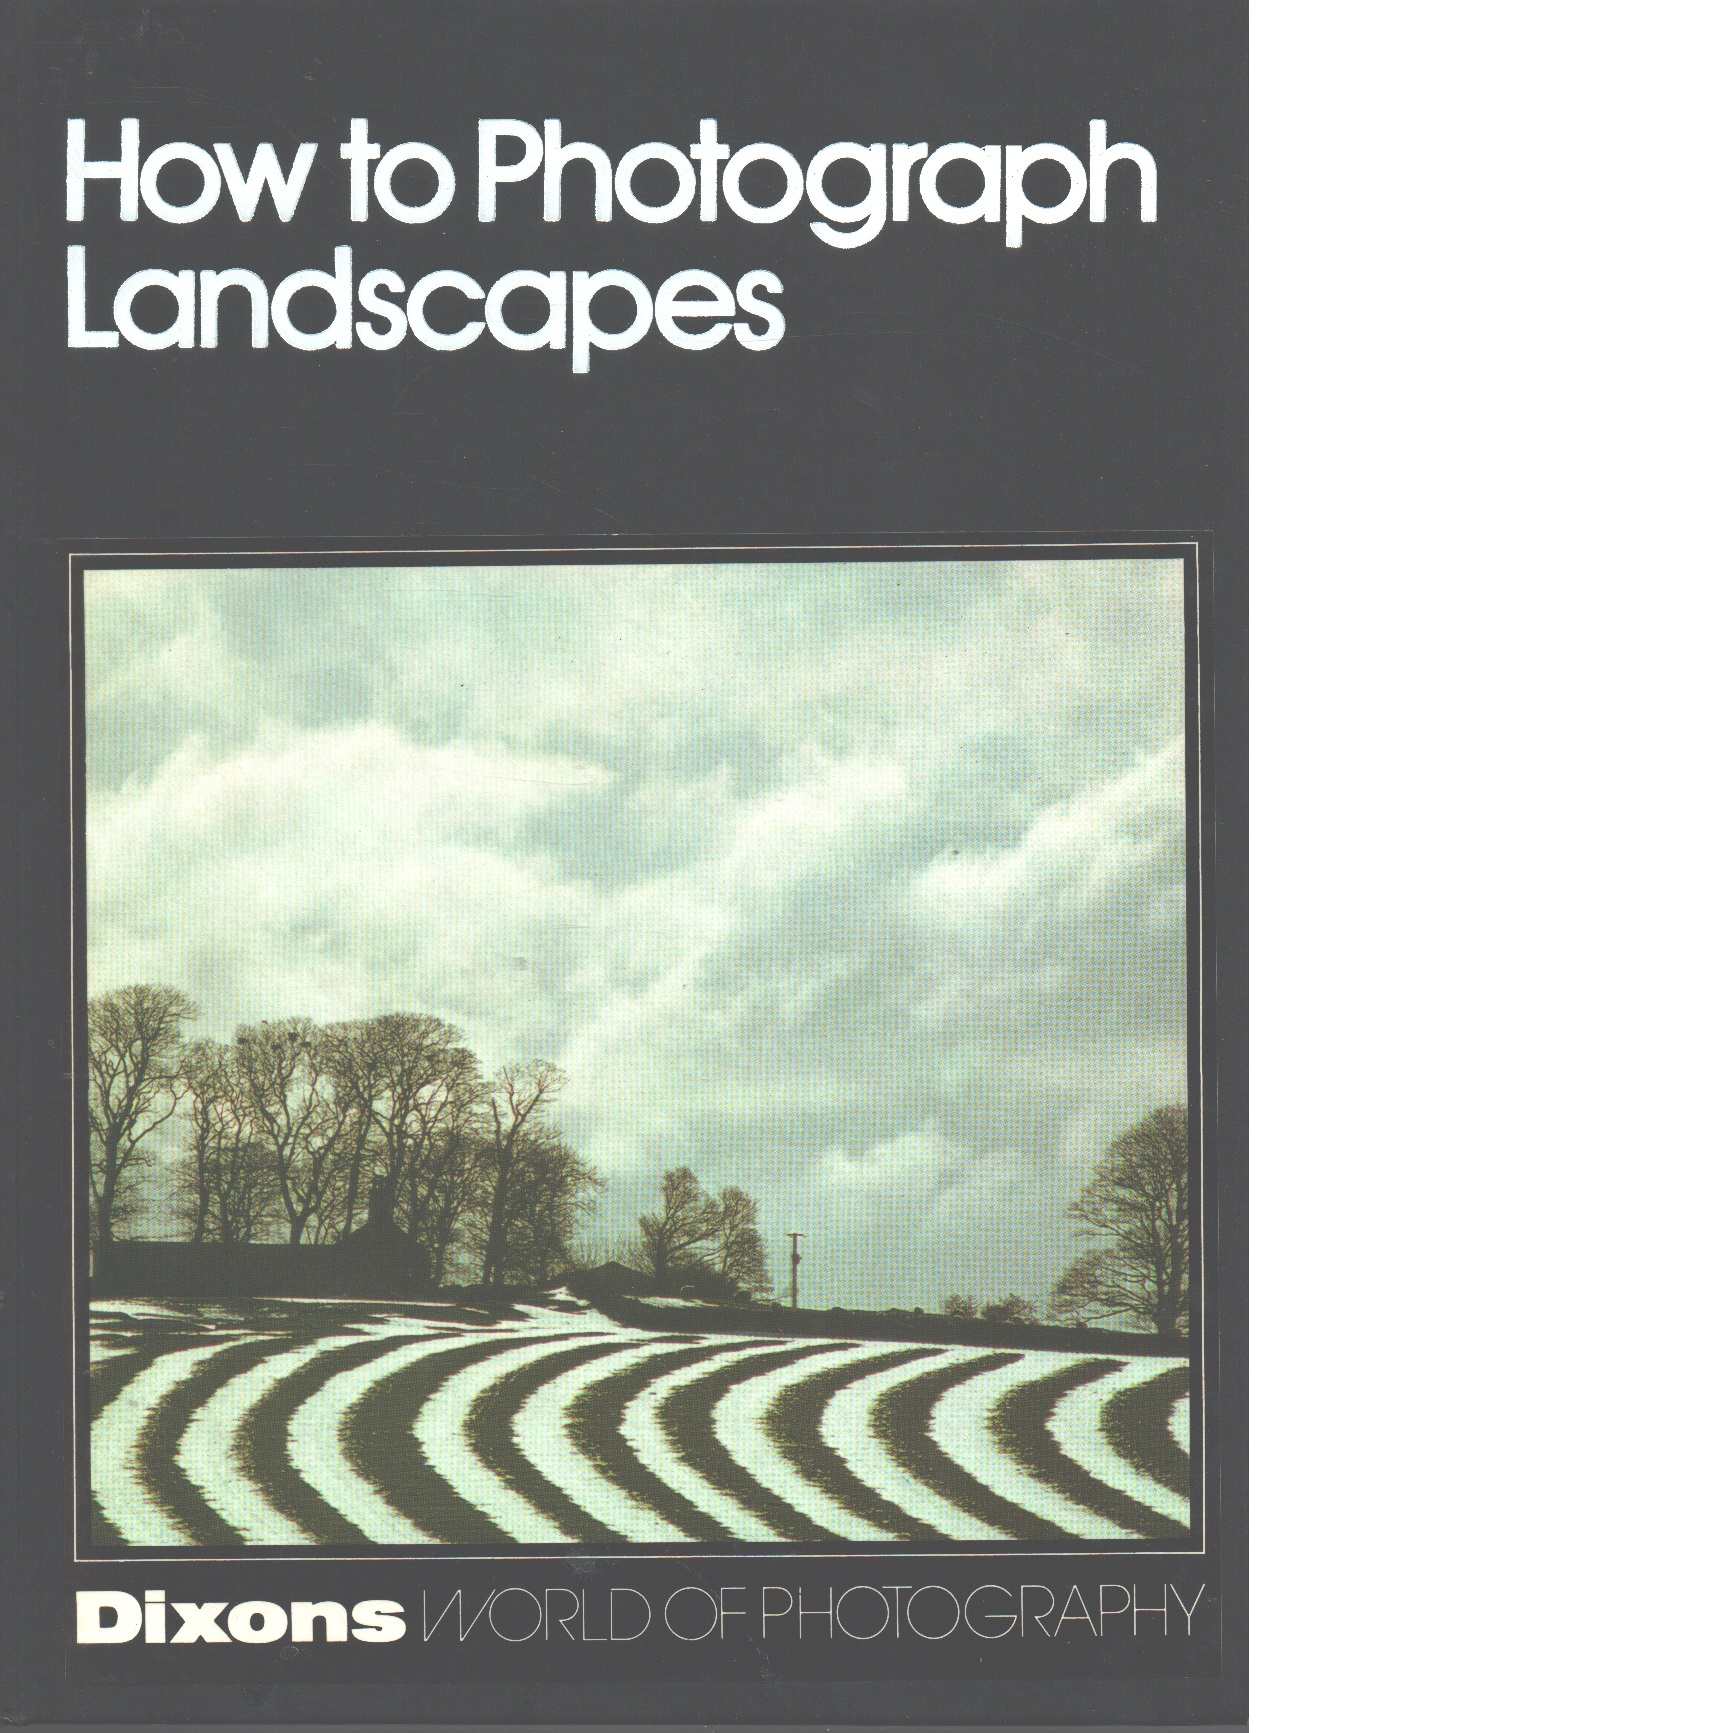 Dixons world of photography : How to photograph landscapes - Red.